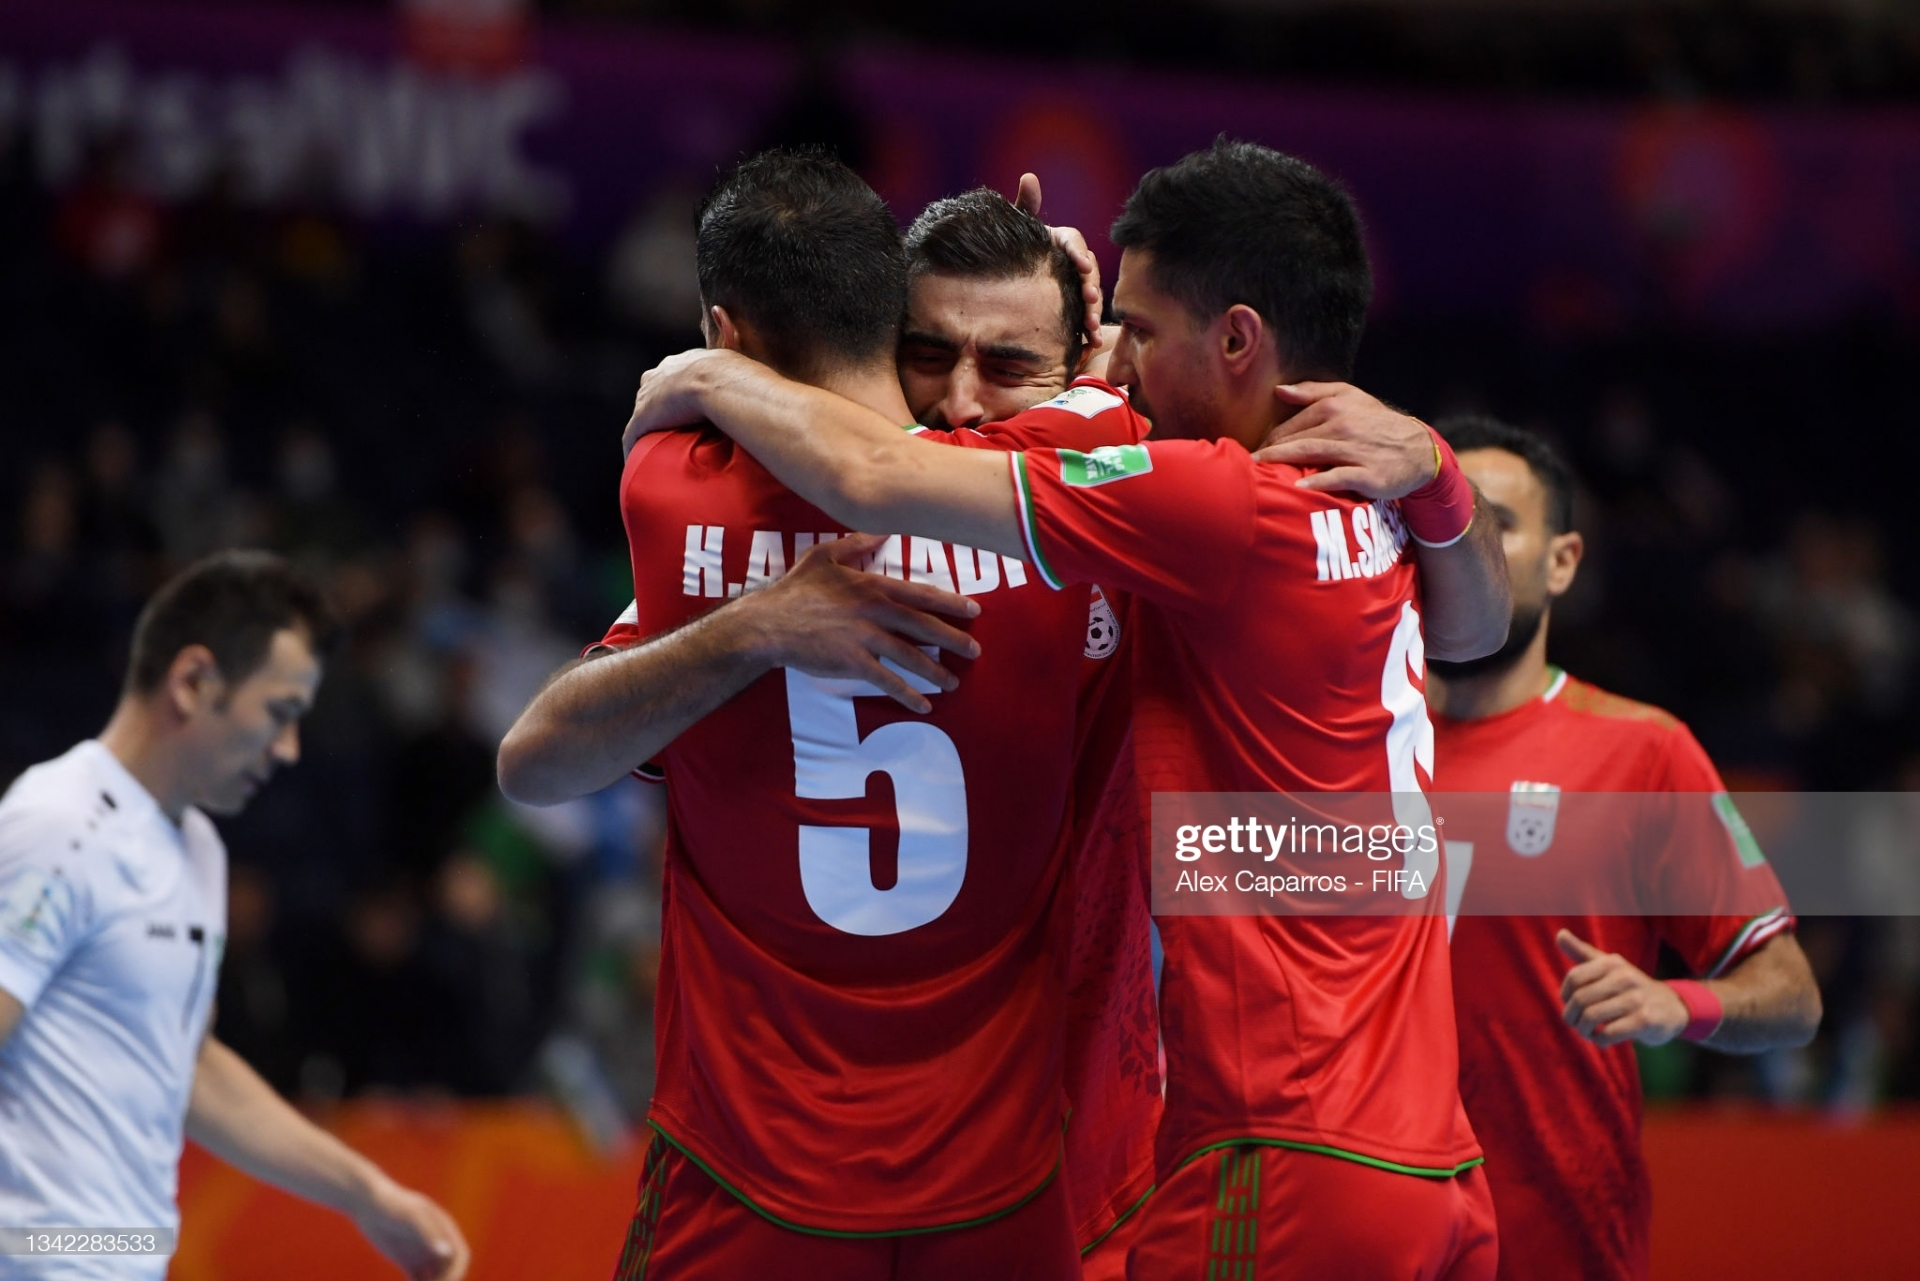 Futsal World Cup results: Iran represents Asia in the quarterfinals, adding a 'great war' Spain vs Portugal